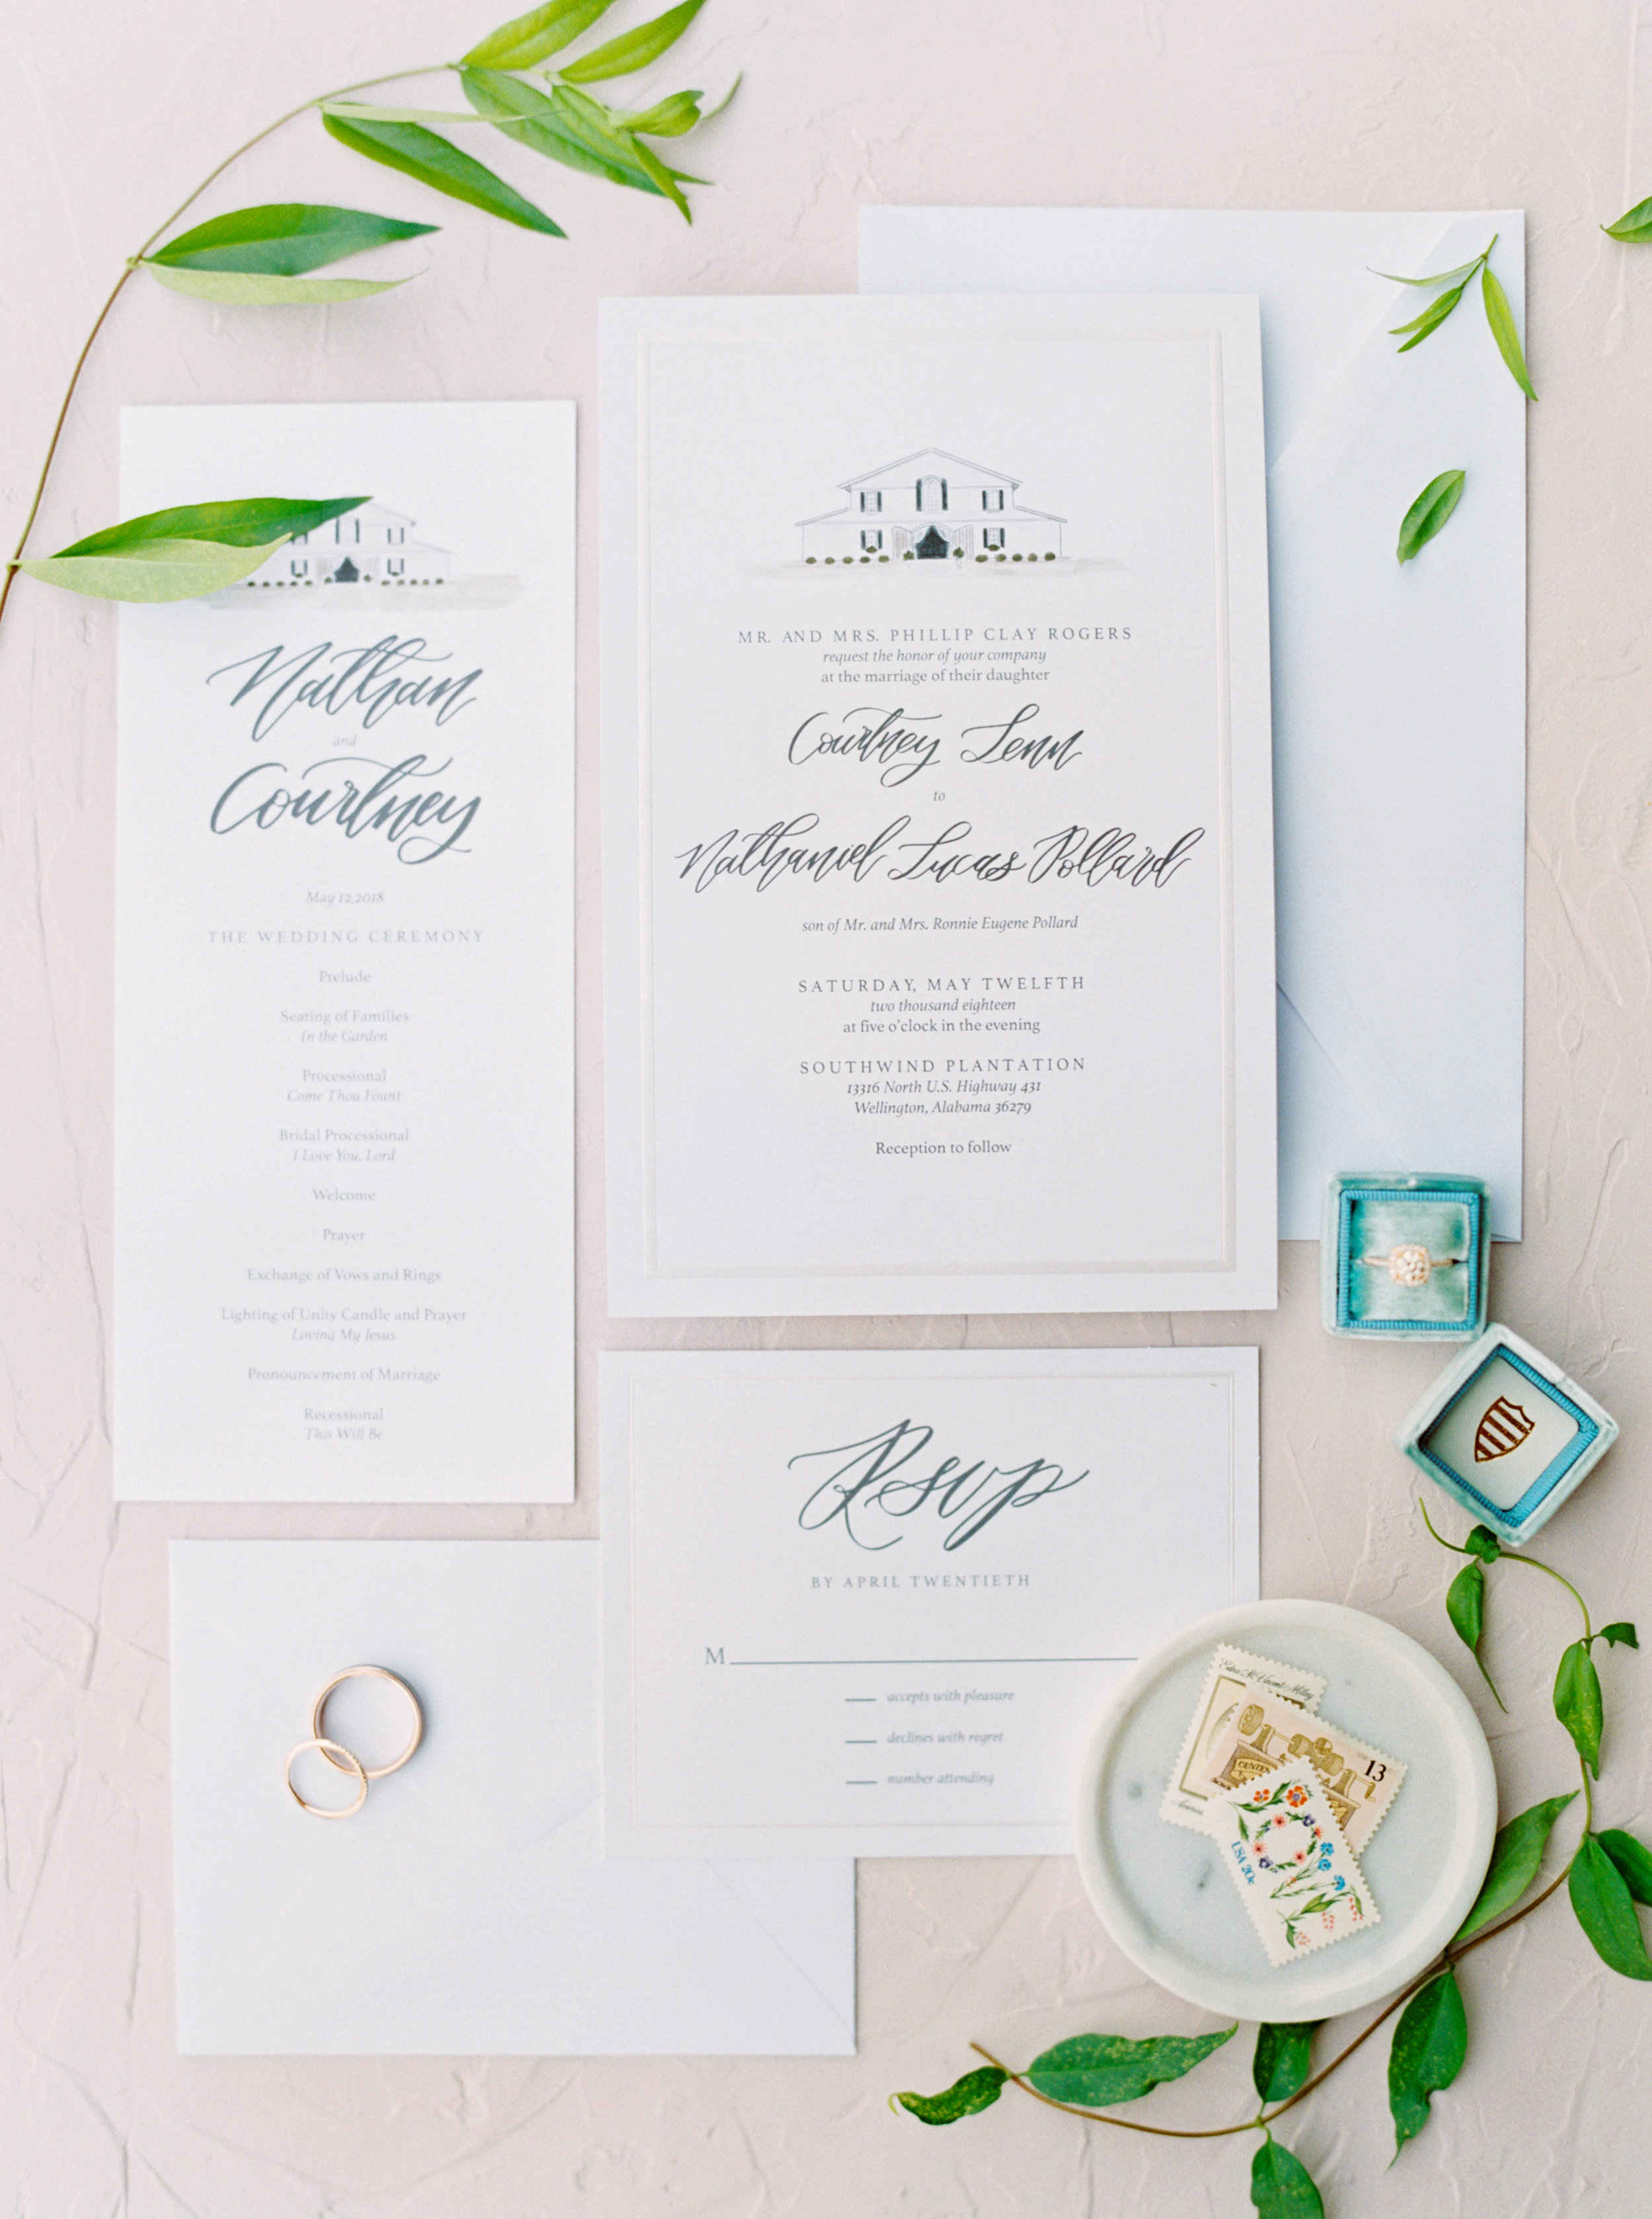 GracefullyMade-DayOfCalligraphy-Programs